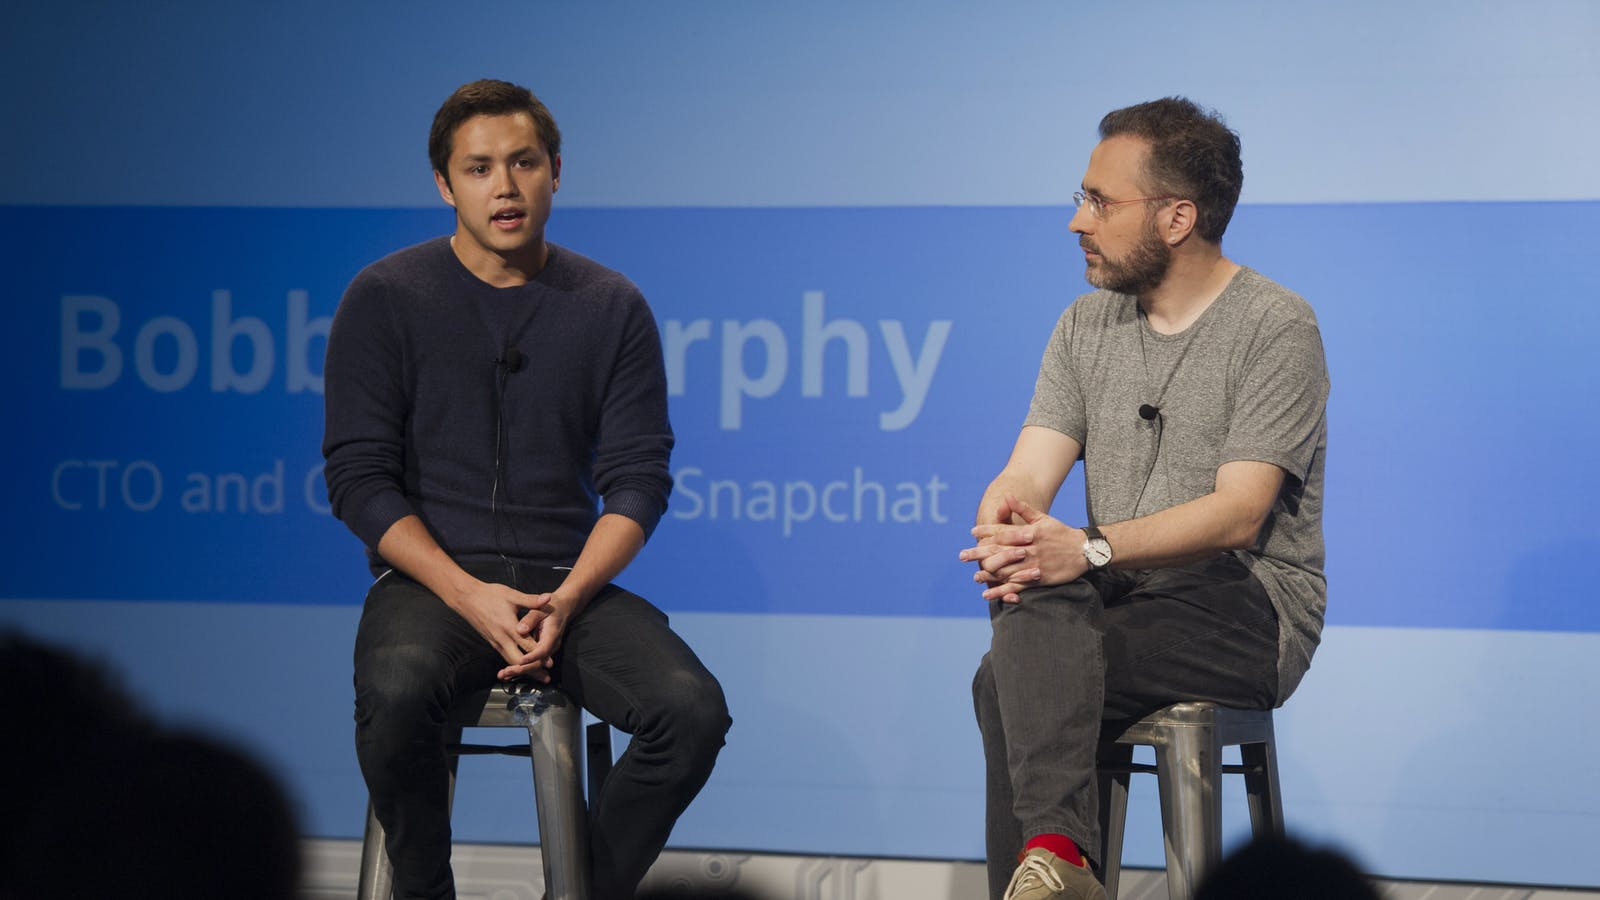 Snap co-founder Bobby Murphy (left) and Google's Urs Hölzle in 2014. Photo by Bloomberg.